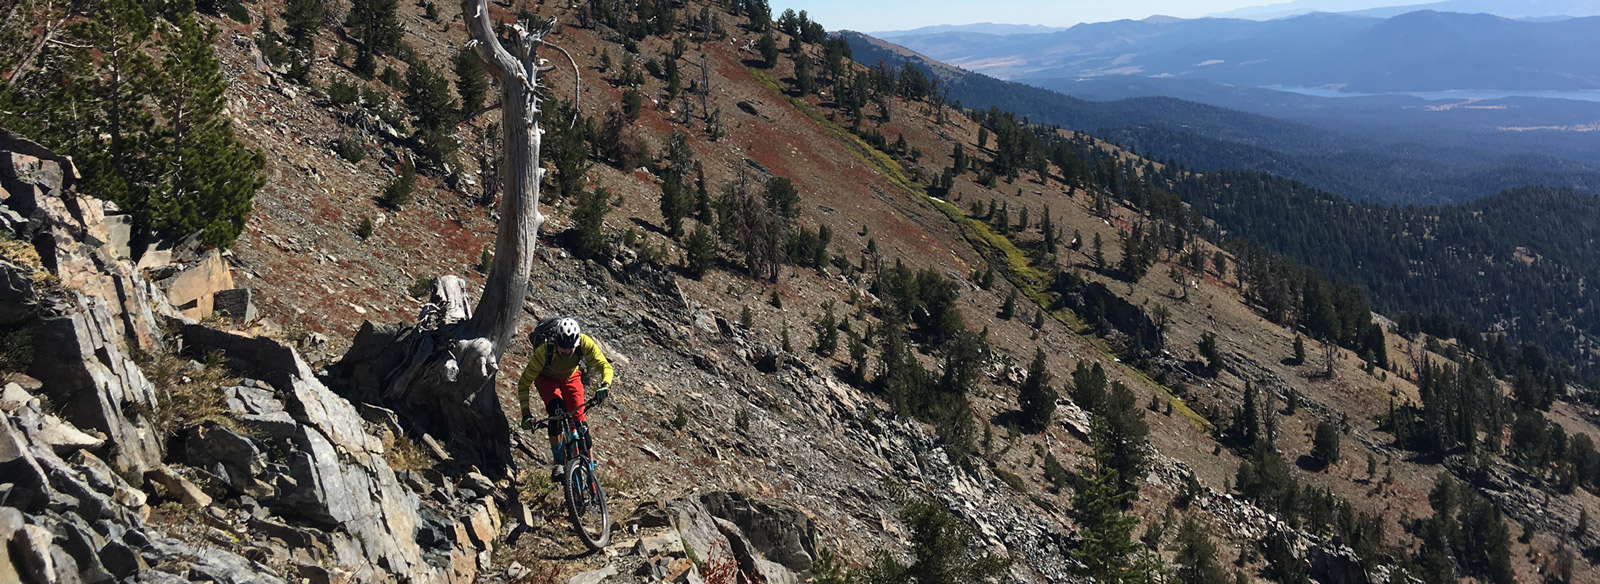 Riding the Elkhorn Crest Trail